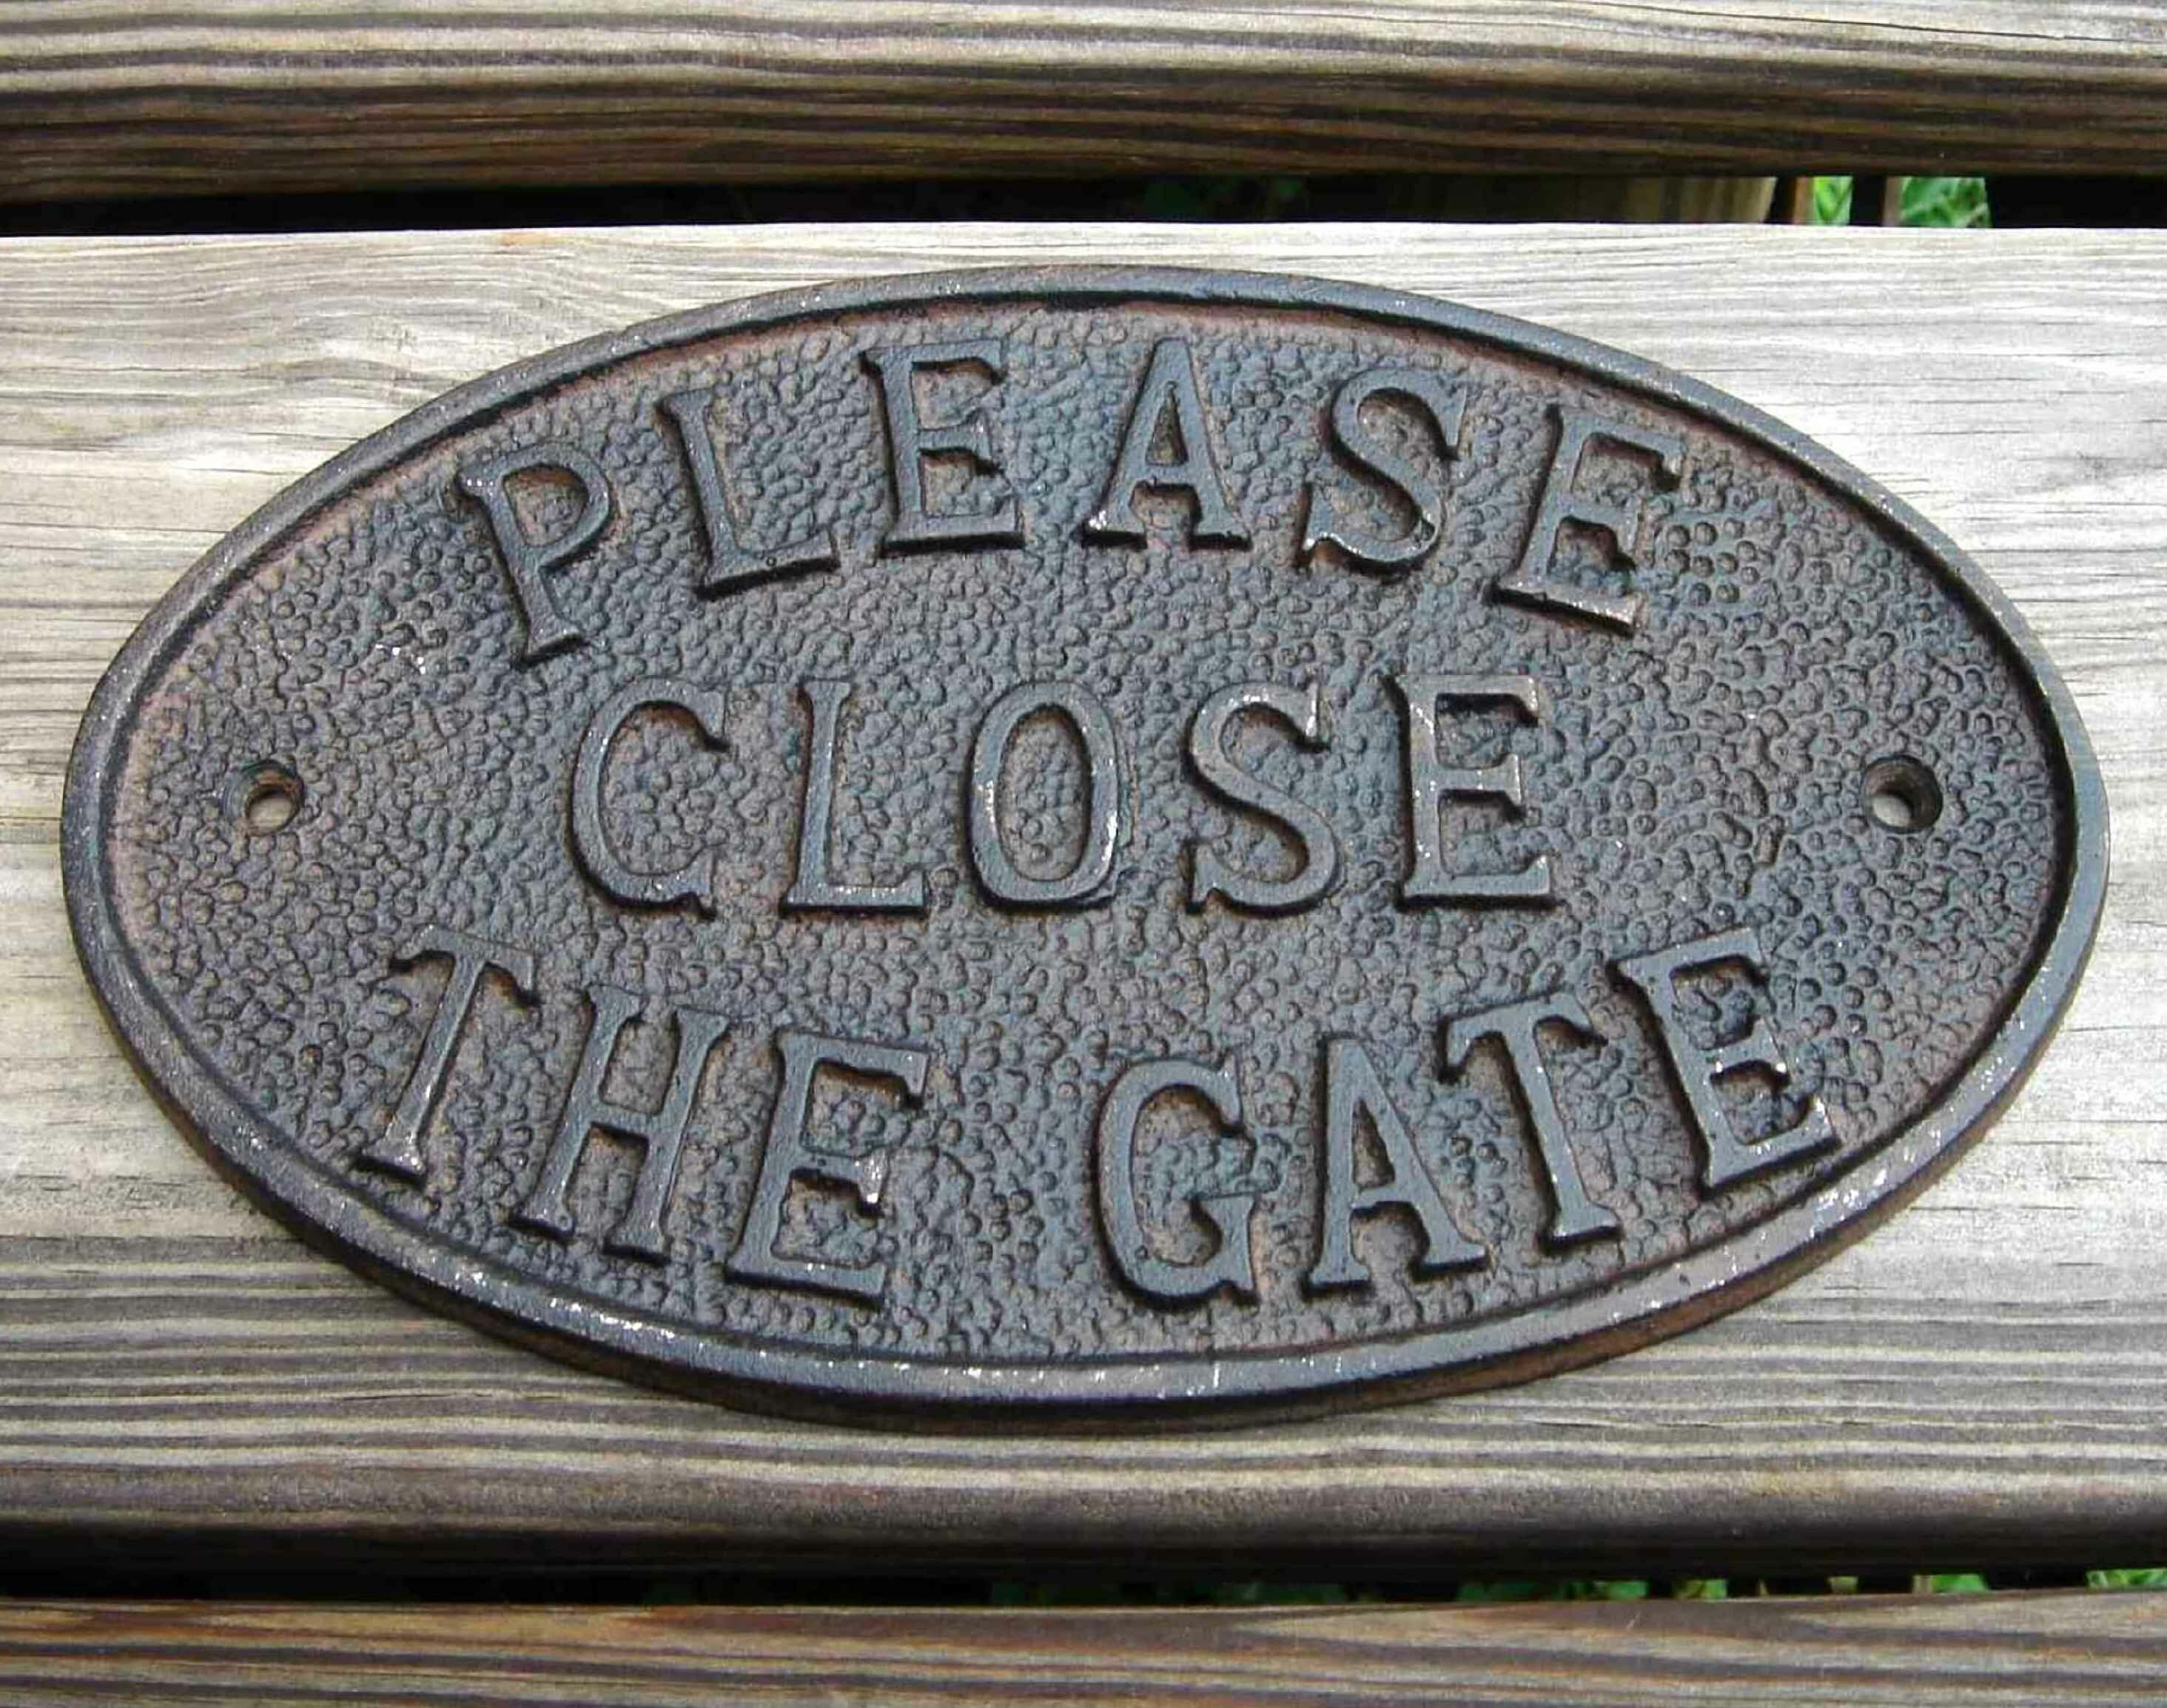 Please Close the Gate Cast Iron Sign Plaque Wall Fence Gate Post Garden Home